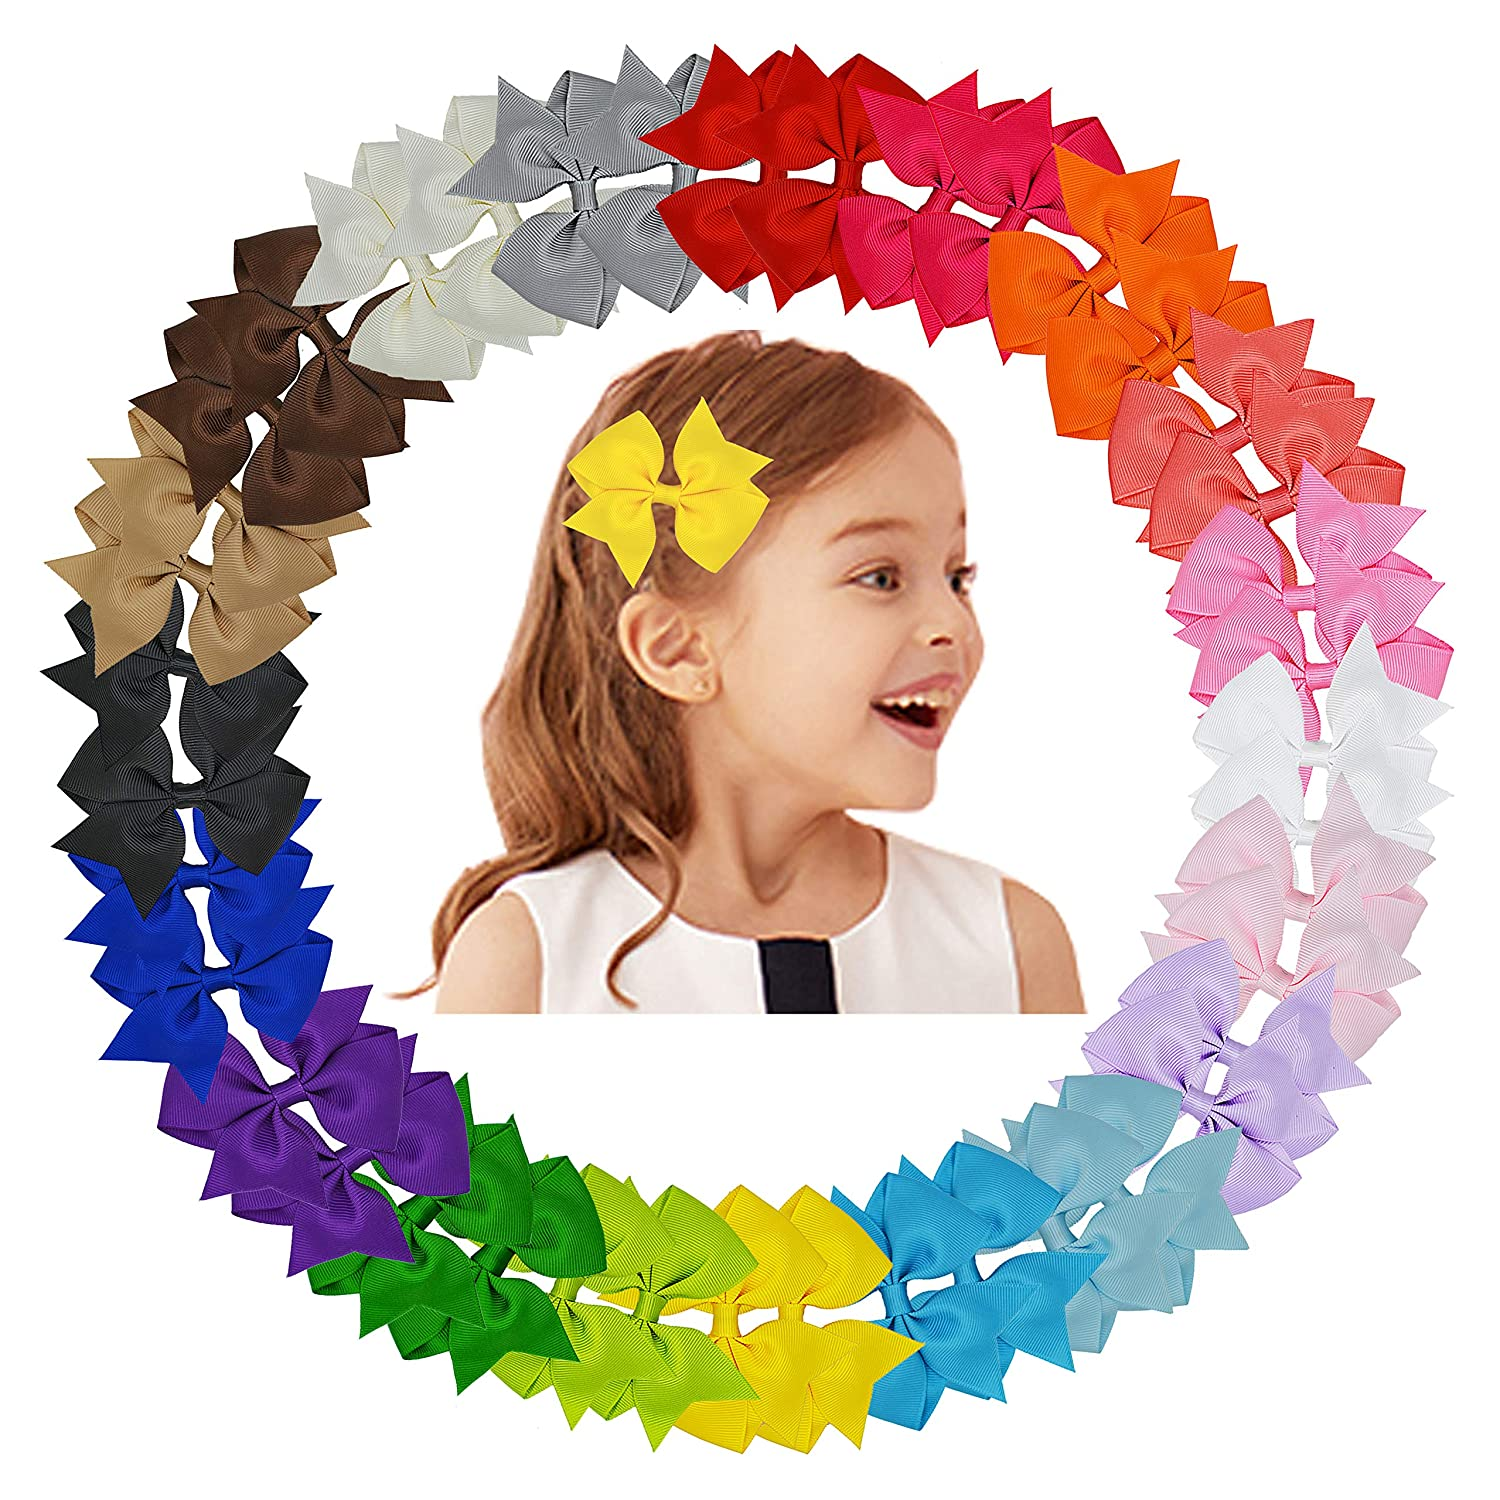 Bright 40 Pieces 3 Inch Hair Bows Alligator Hair Clips For Baby Girls Toddlers In Pairs Girls' Accessories Clothing, Shoes & Accessories